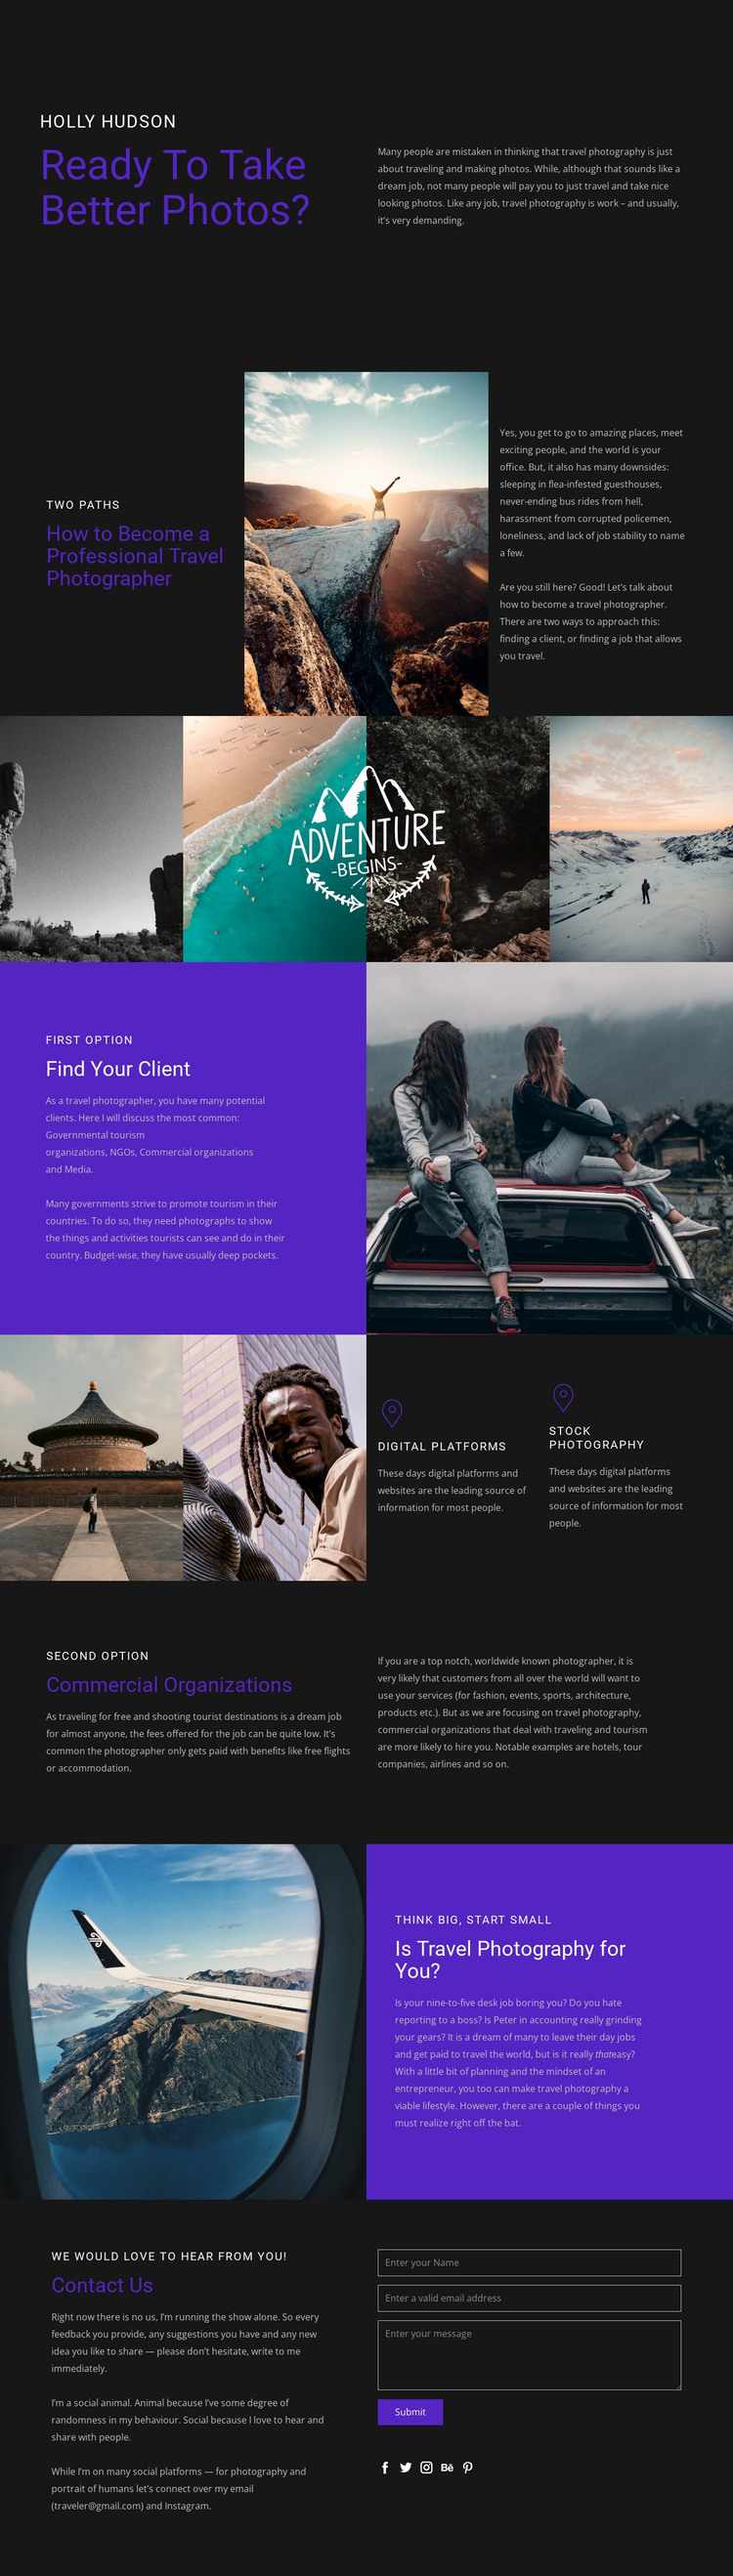 Travel and photography Web Design